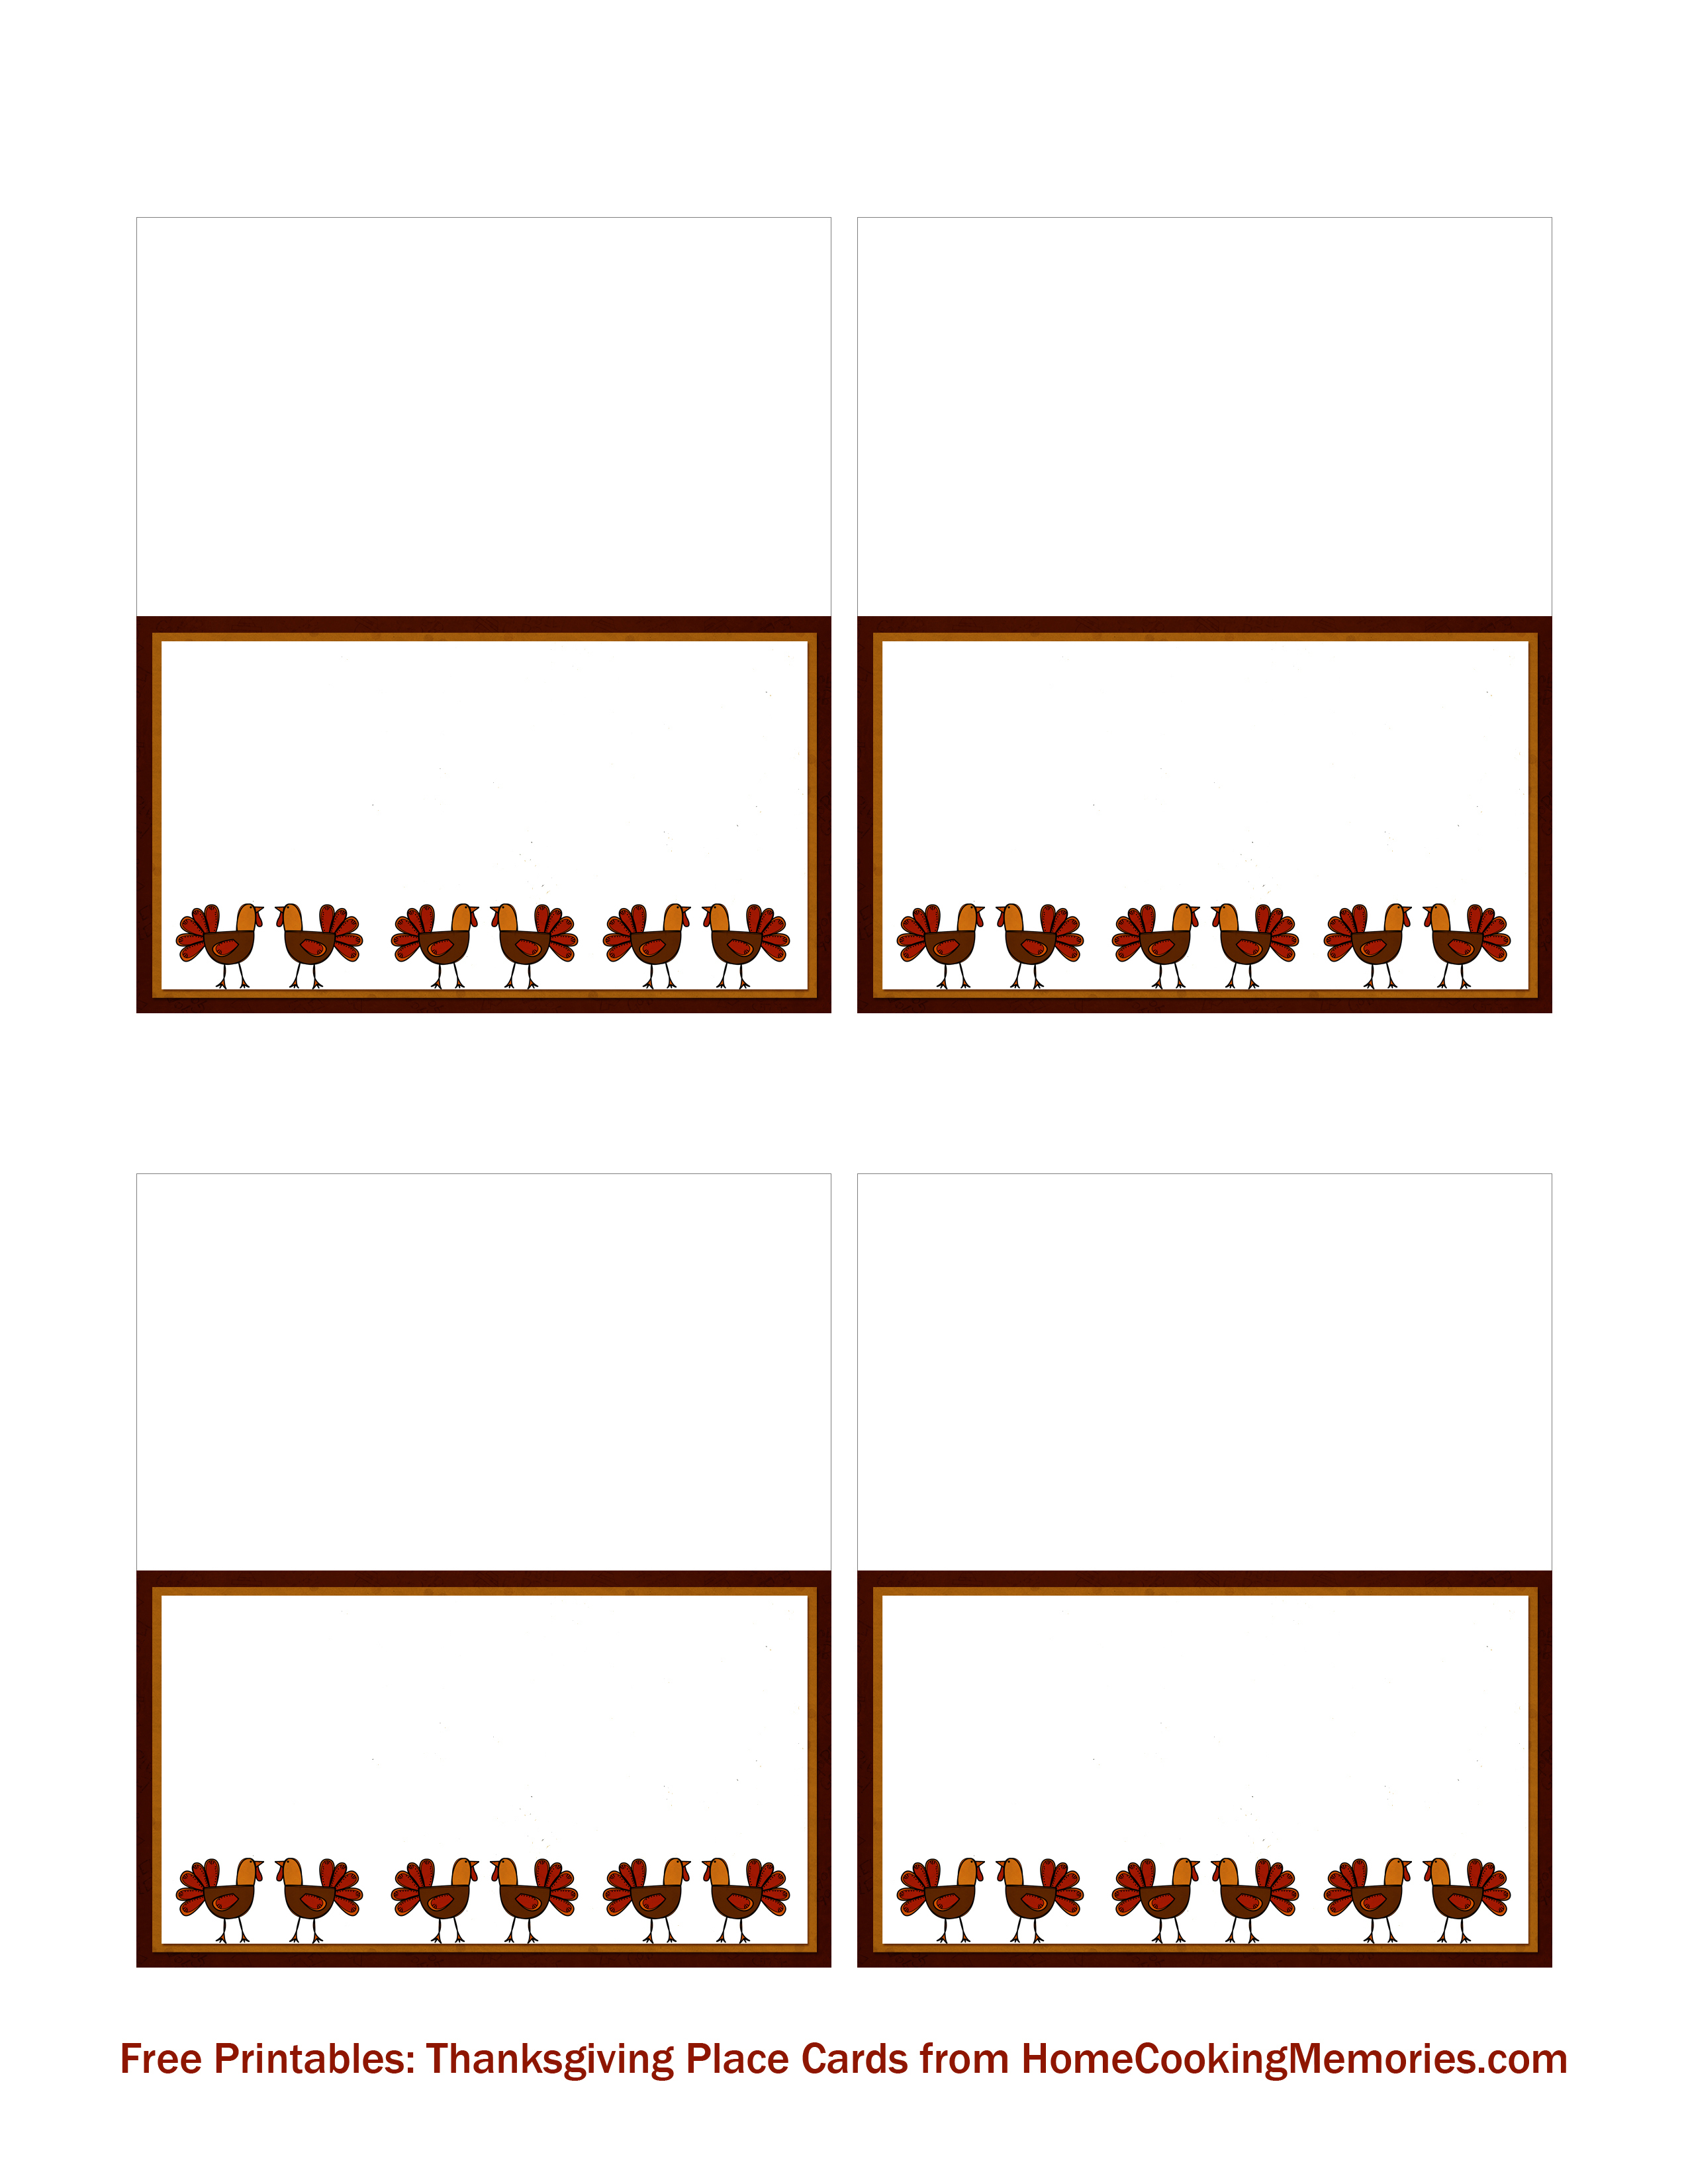 Free Printables: Thanksgiving Place Cards - Home Cooking Memories - Free Printable Thanksgiving Place Cards To Color